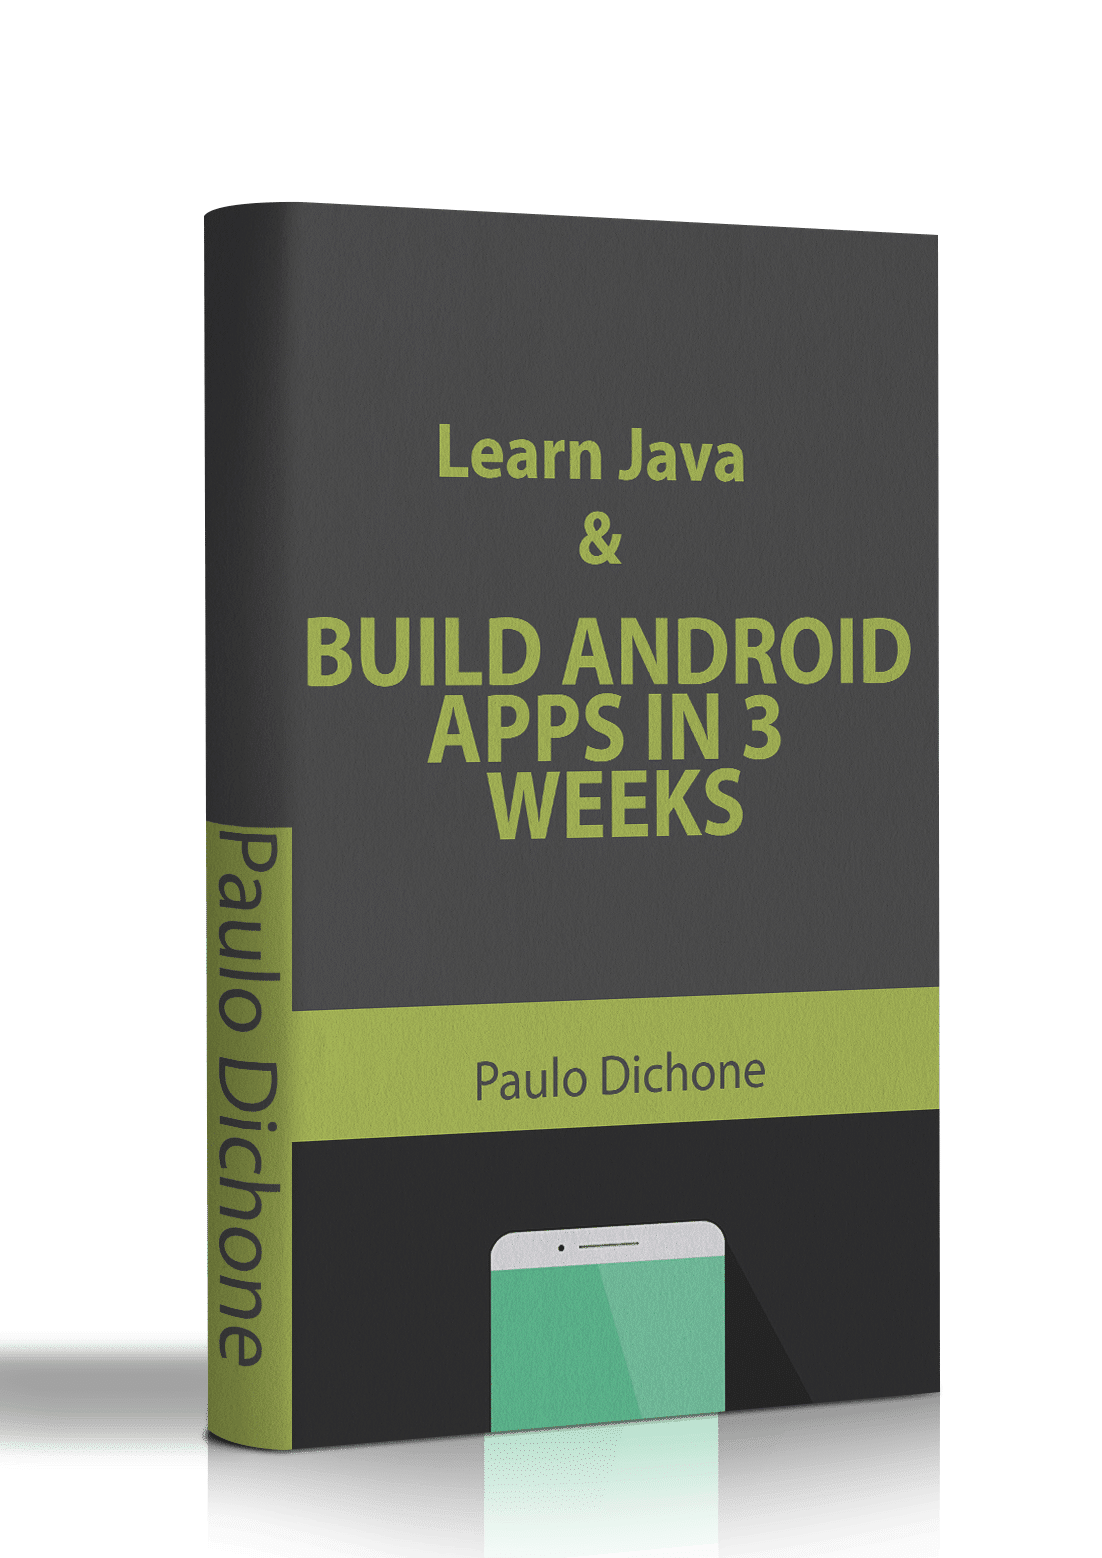 For ebook java download app